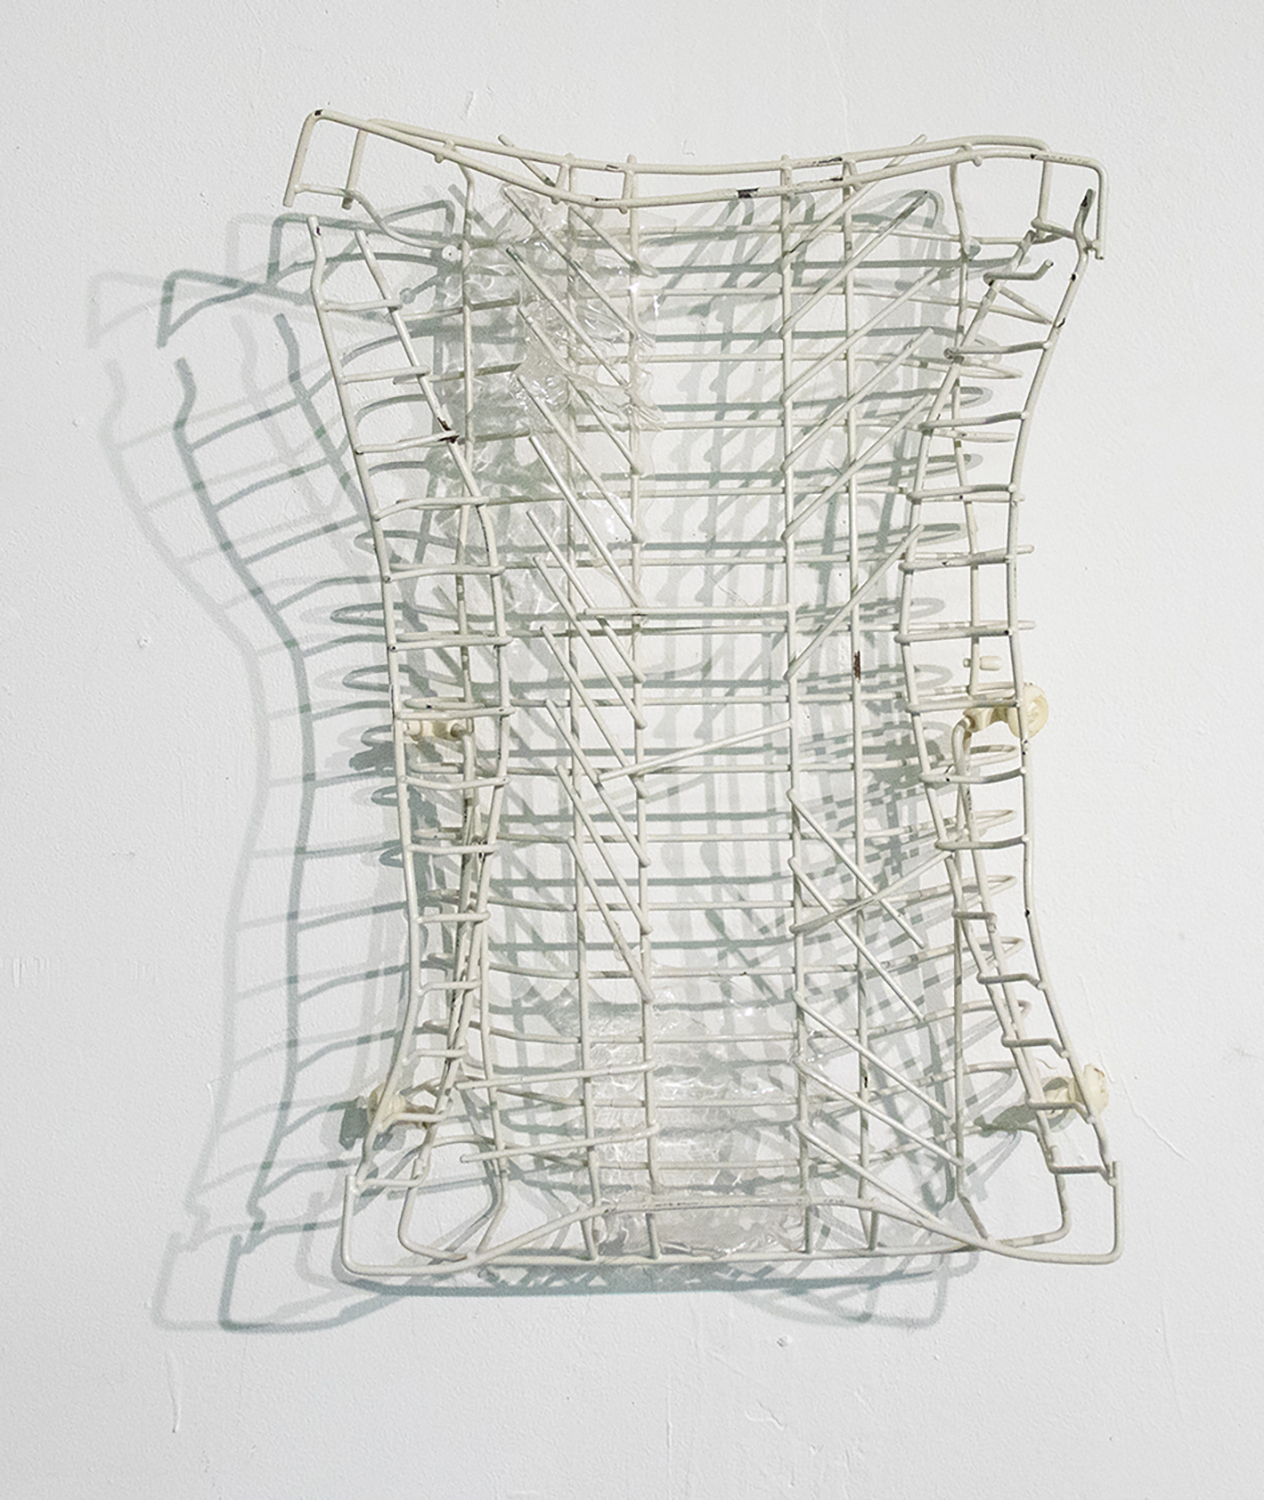 Untitled (dishwasher tray)  Found object sculpture  20 x 15 x 5 in